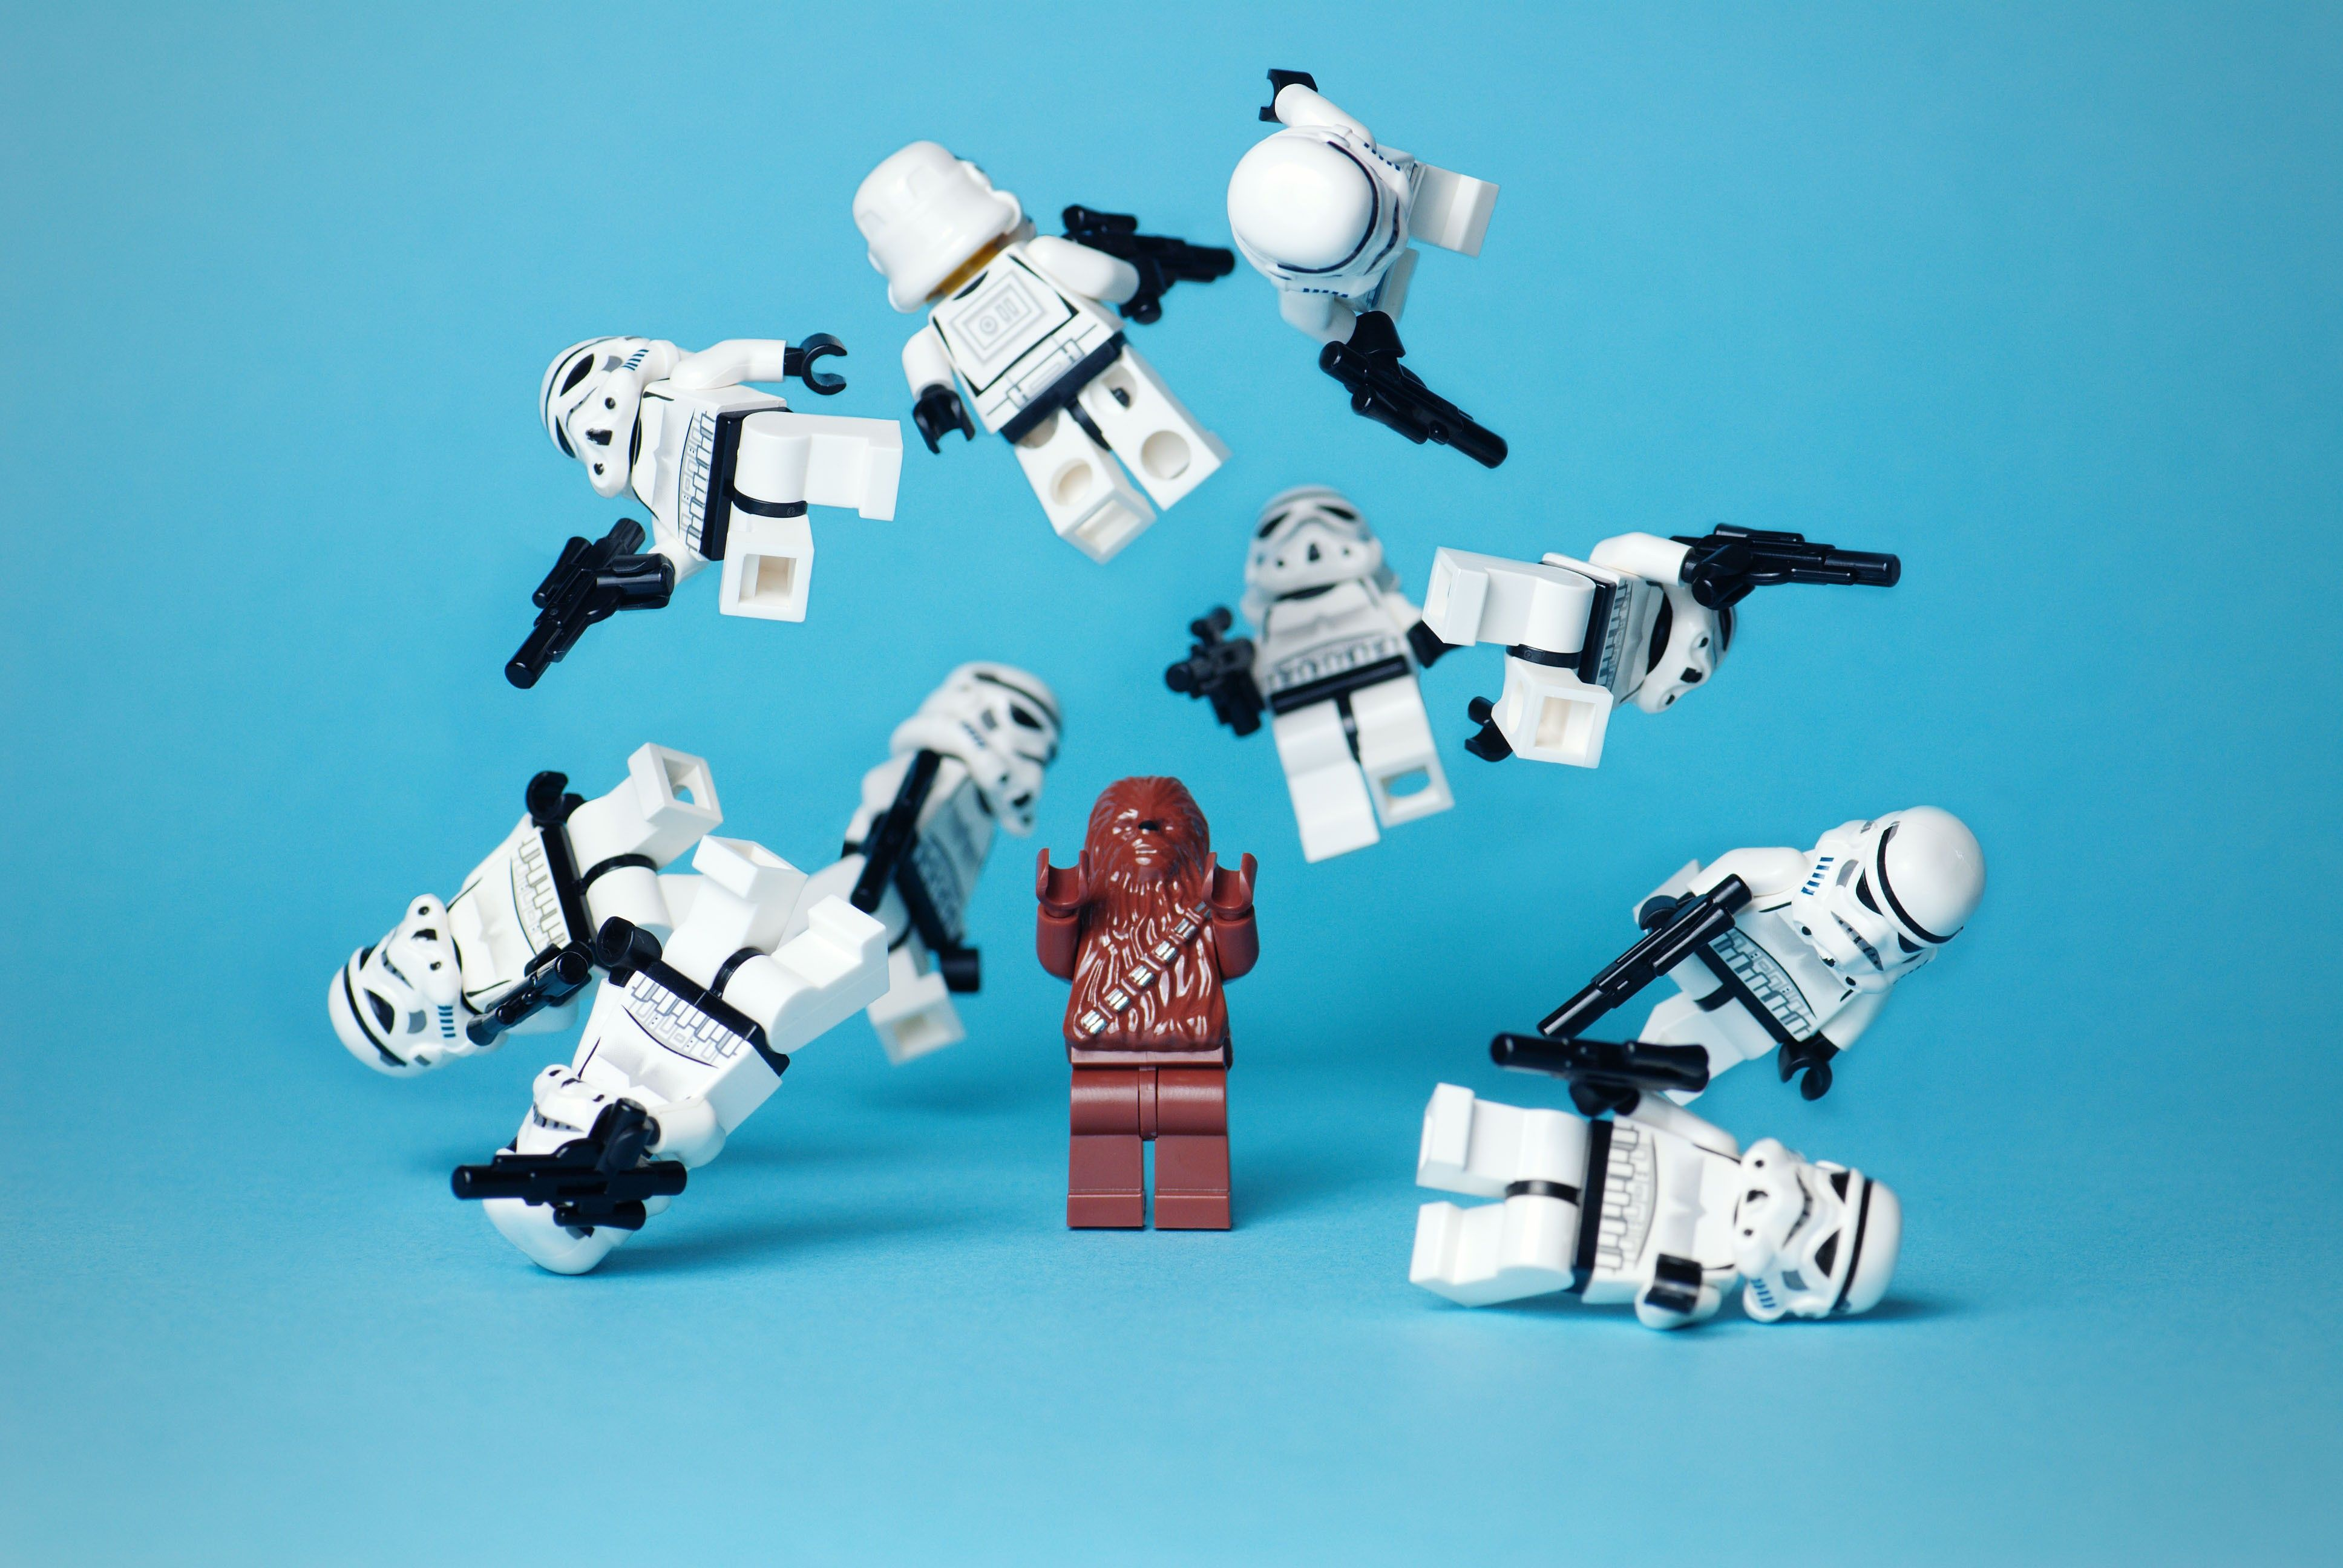 Lego Star Wars Wallpaper For Iphone Free Download Star Wars